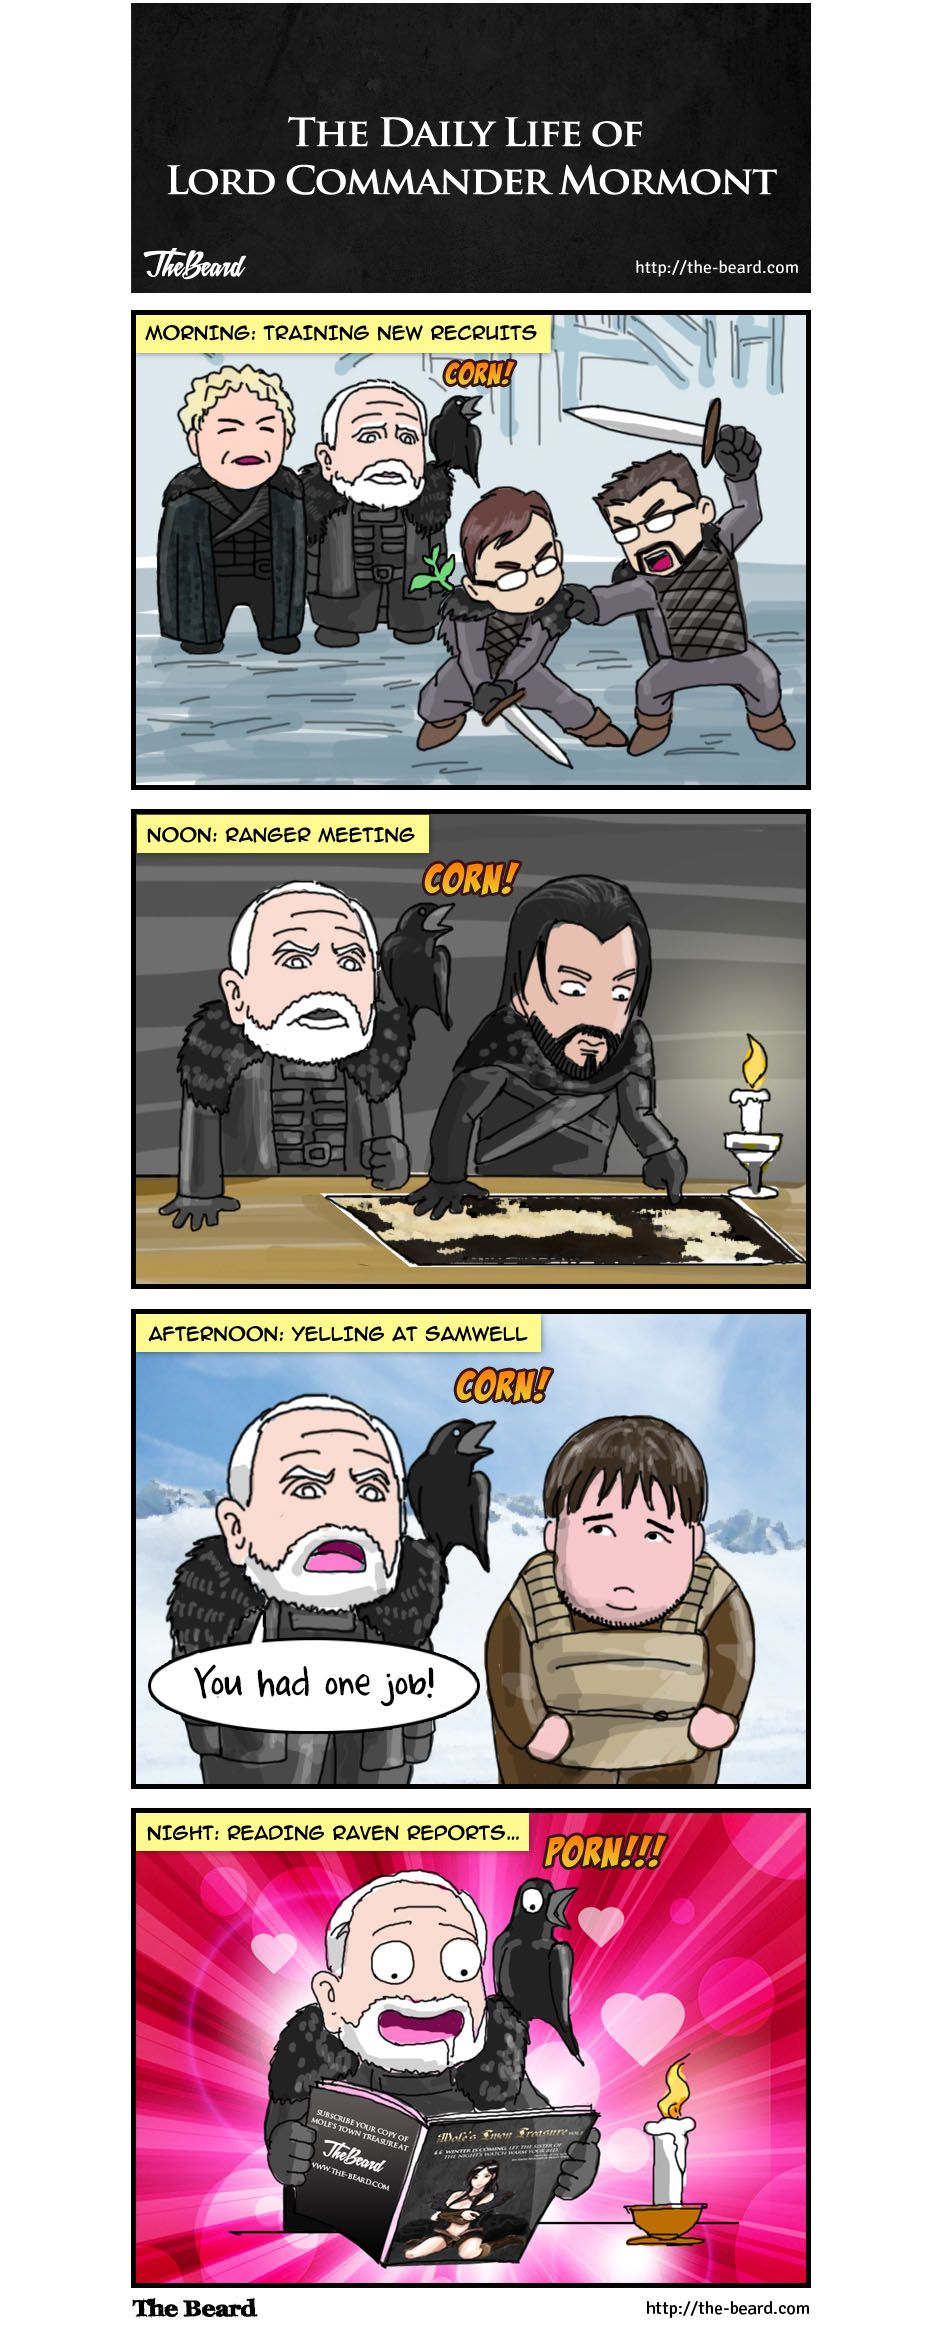 Game Of Thrones Comic The Daily Life Of Lord Commander Mormont Game Of Thrones Comic Comics Webcomic